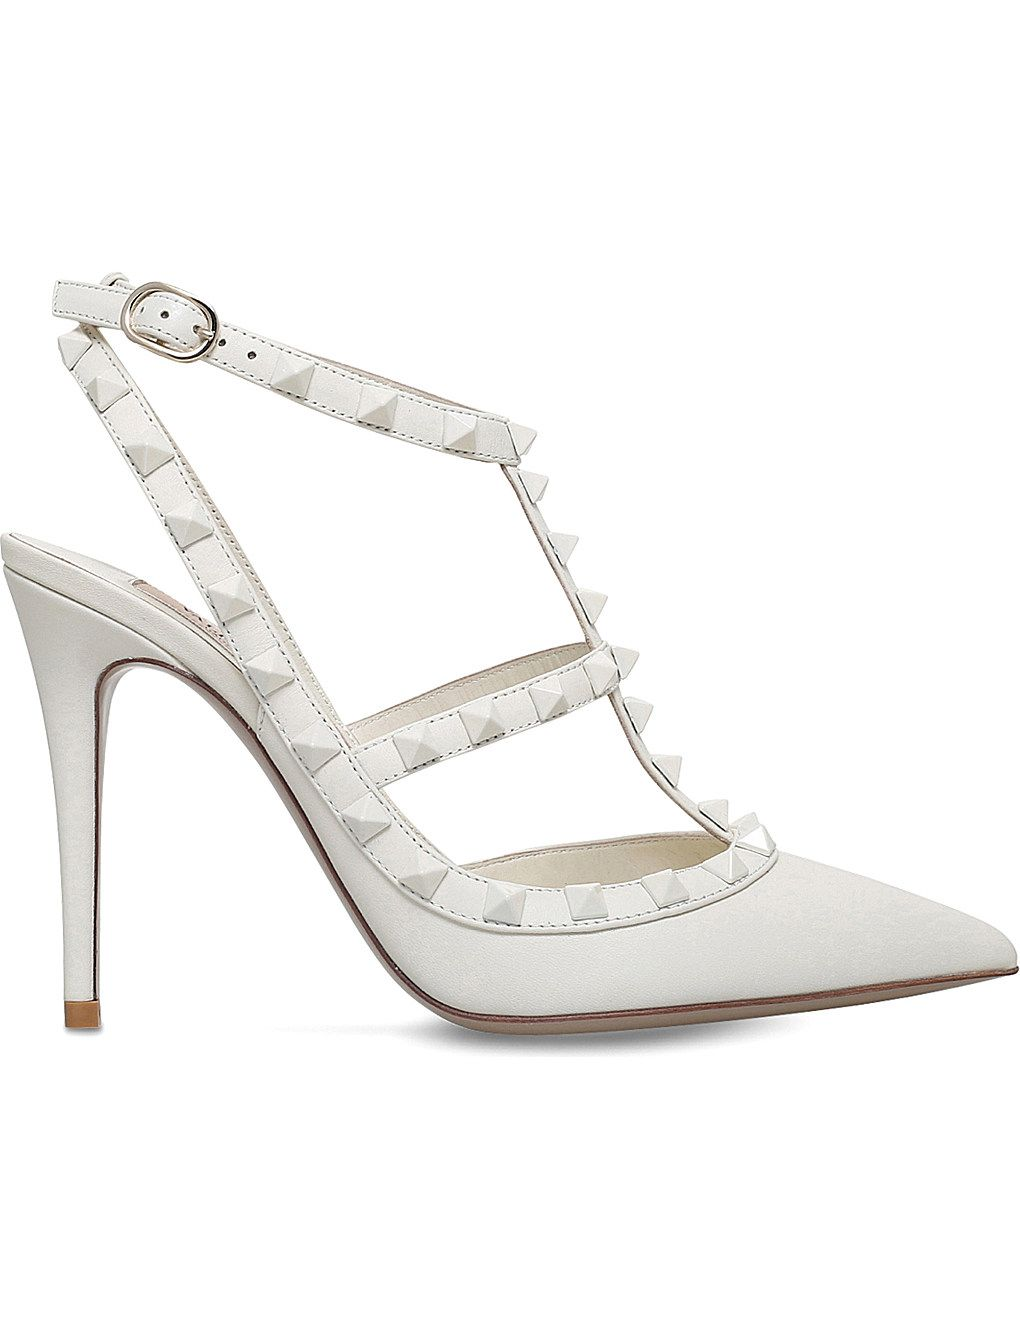 90c9fd06610 VALENTINO Rockstud 100 leather courts